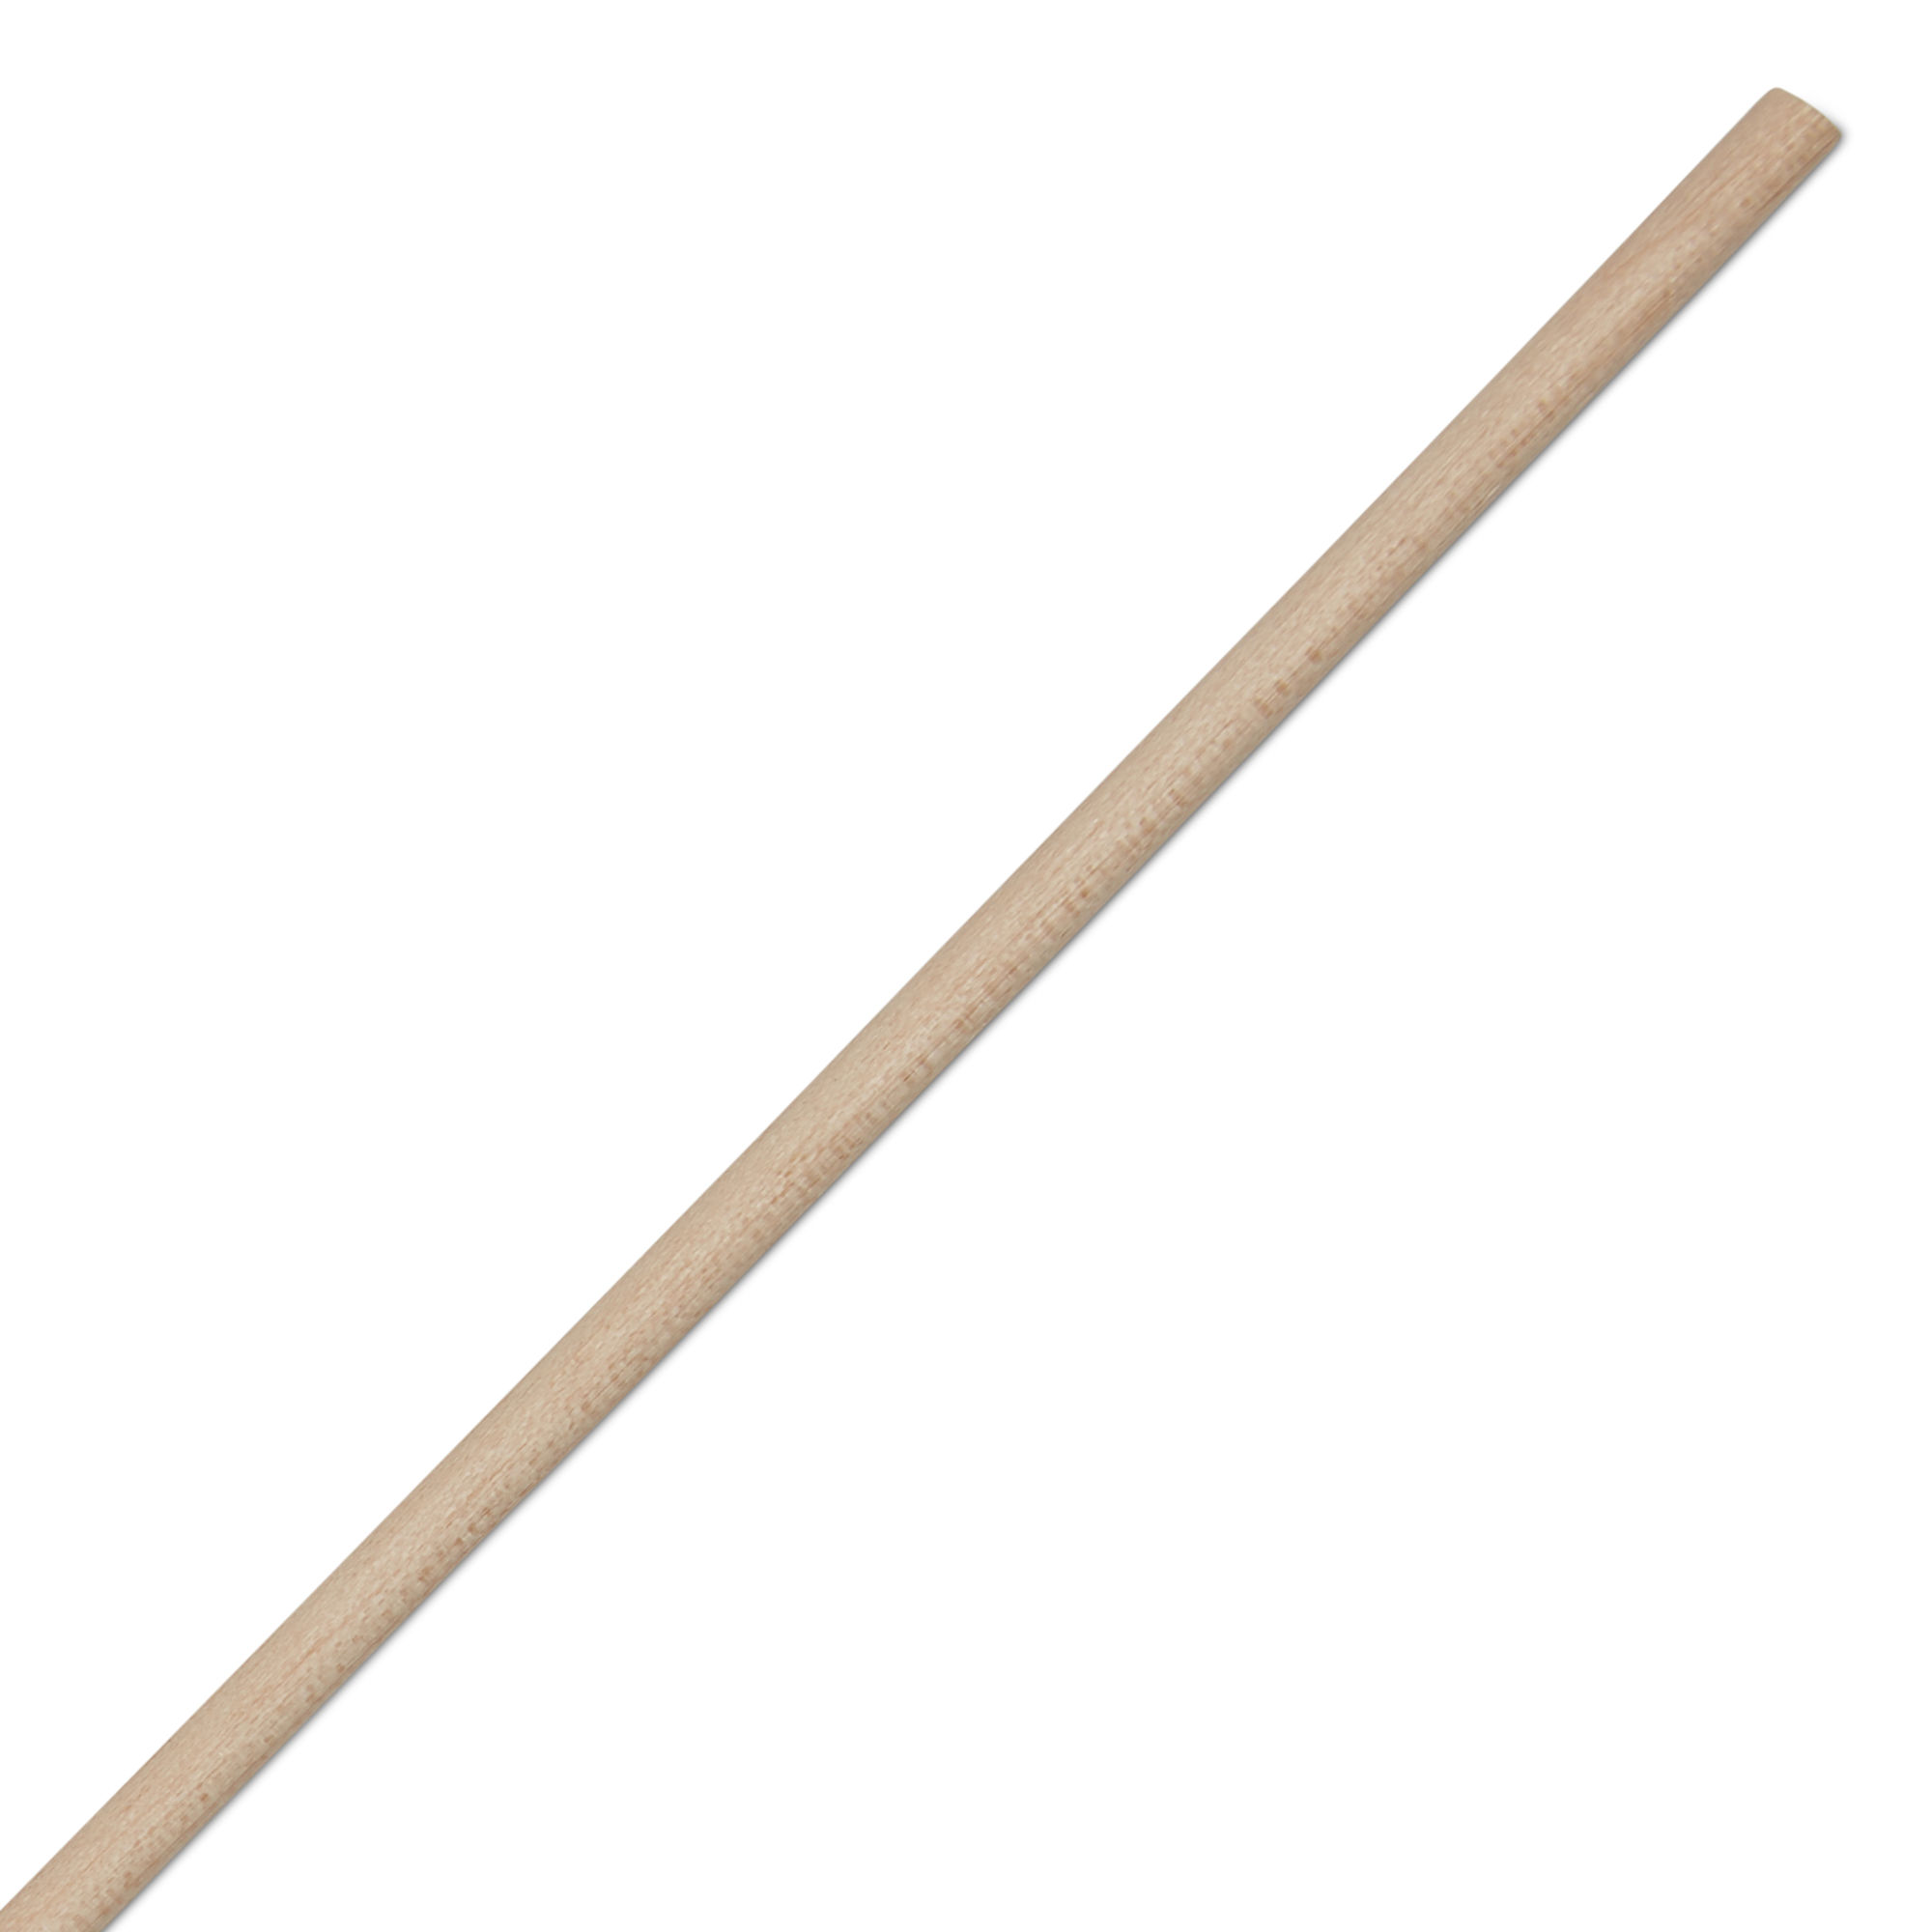 """Wooden Dowel Rods 1//2/"""" x 36/"""" Bag 10 Unfinished Hardwood Birch Dowel Sticks for Craft Projects and DIY Projects."""